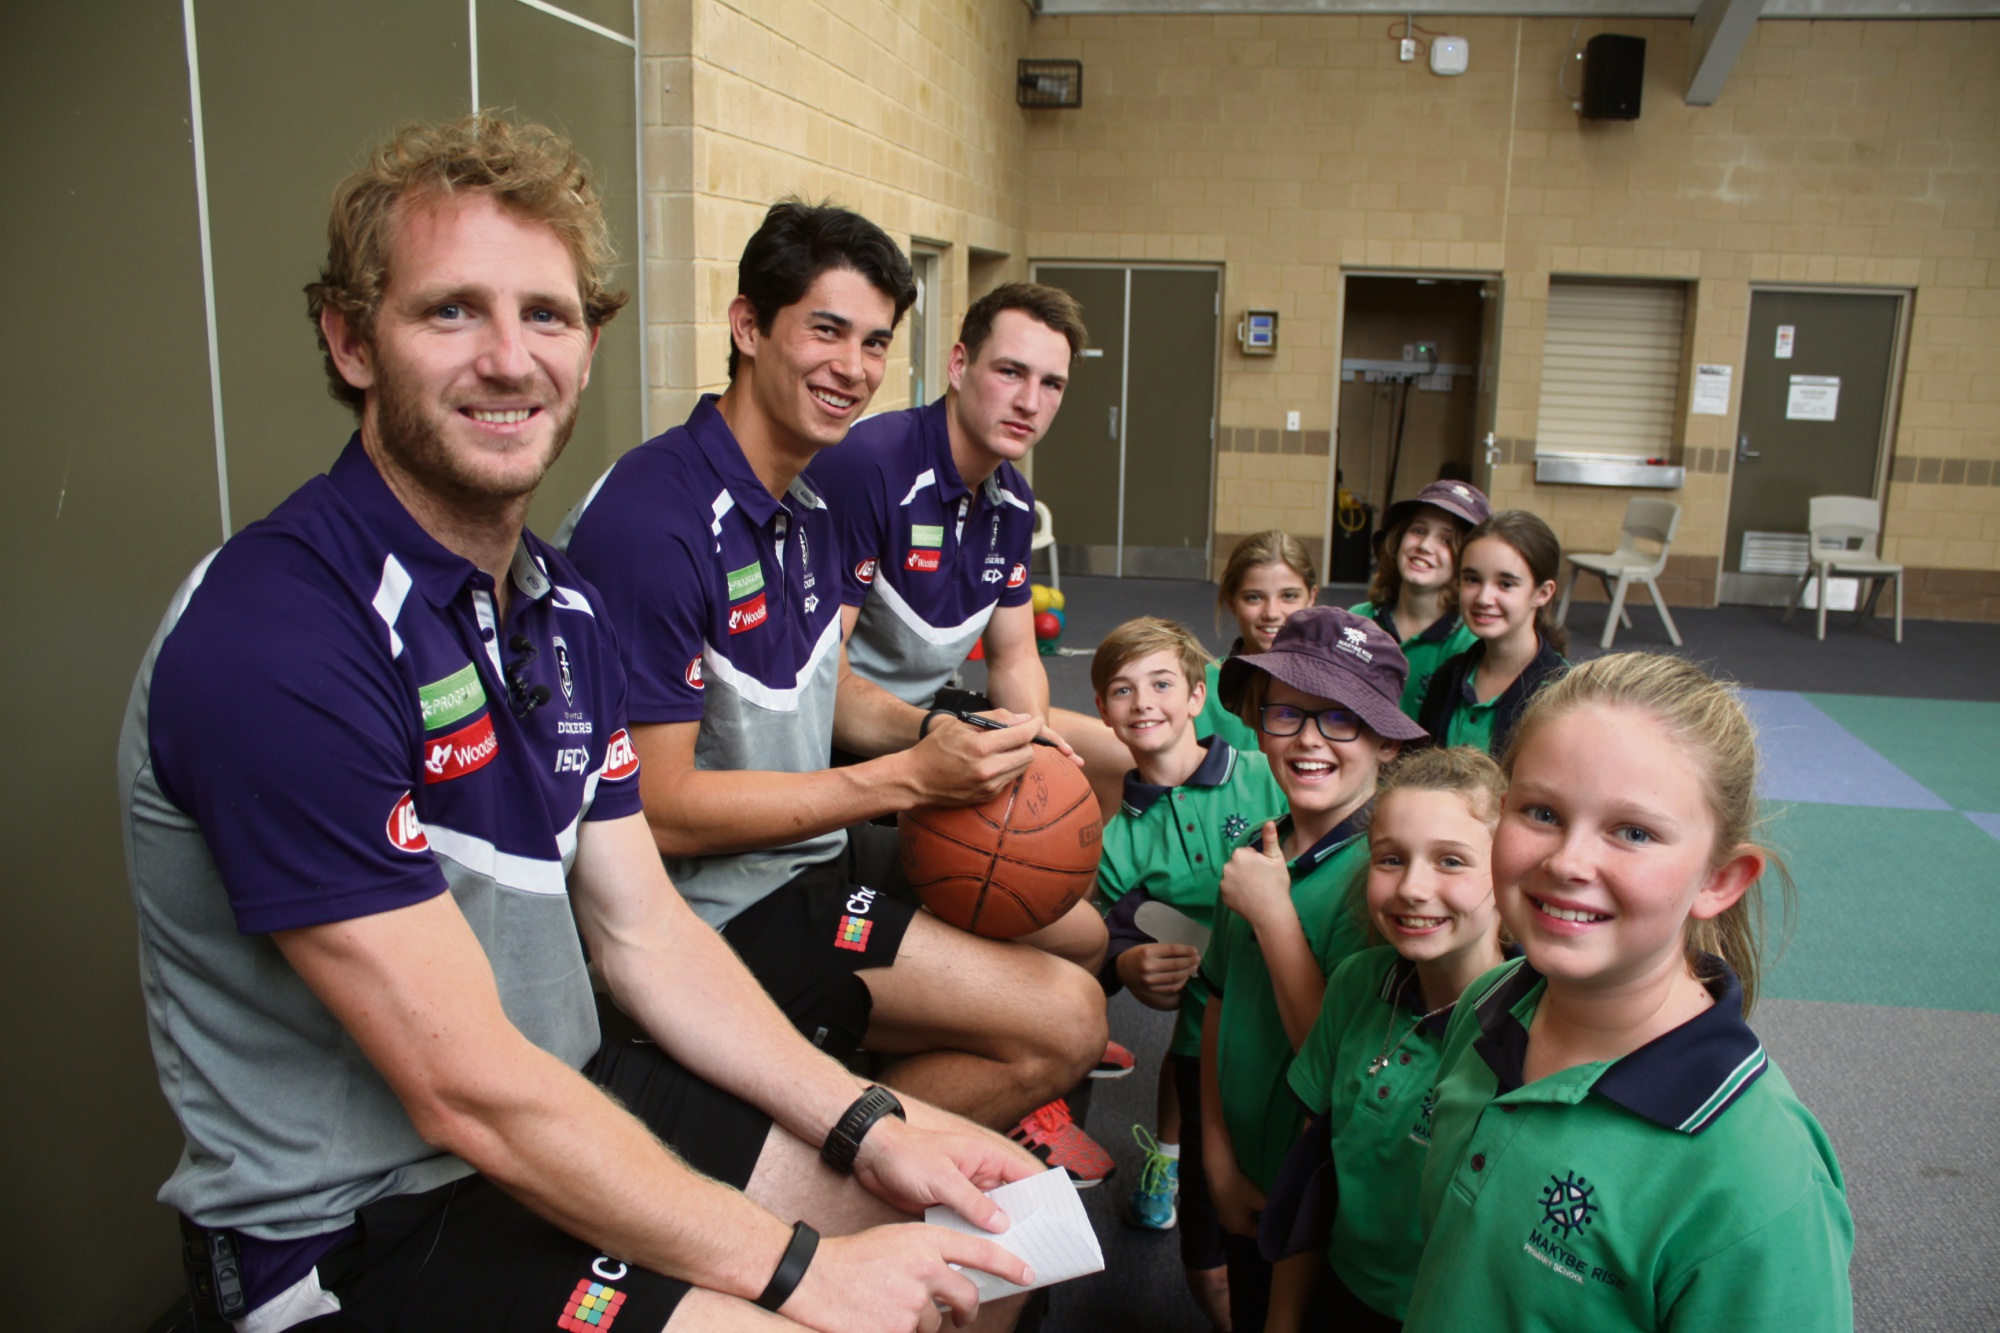 Students from Pre-Primary to Year 6 at Makybe Rise Primary schools got the chance to interact with Fremantle Dockers players at the free clinic.